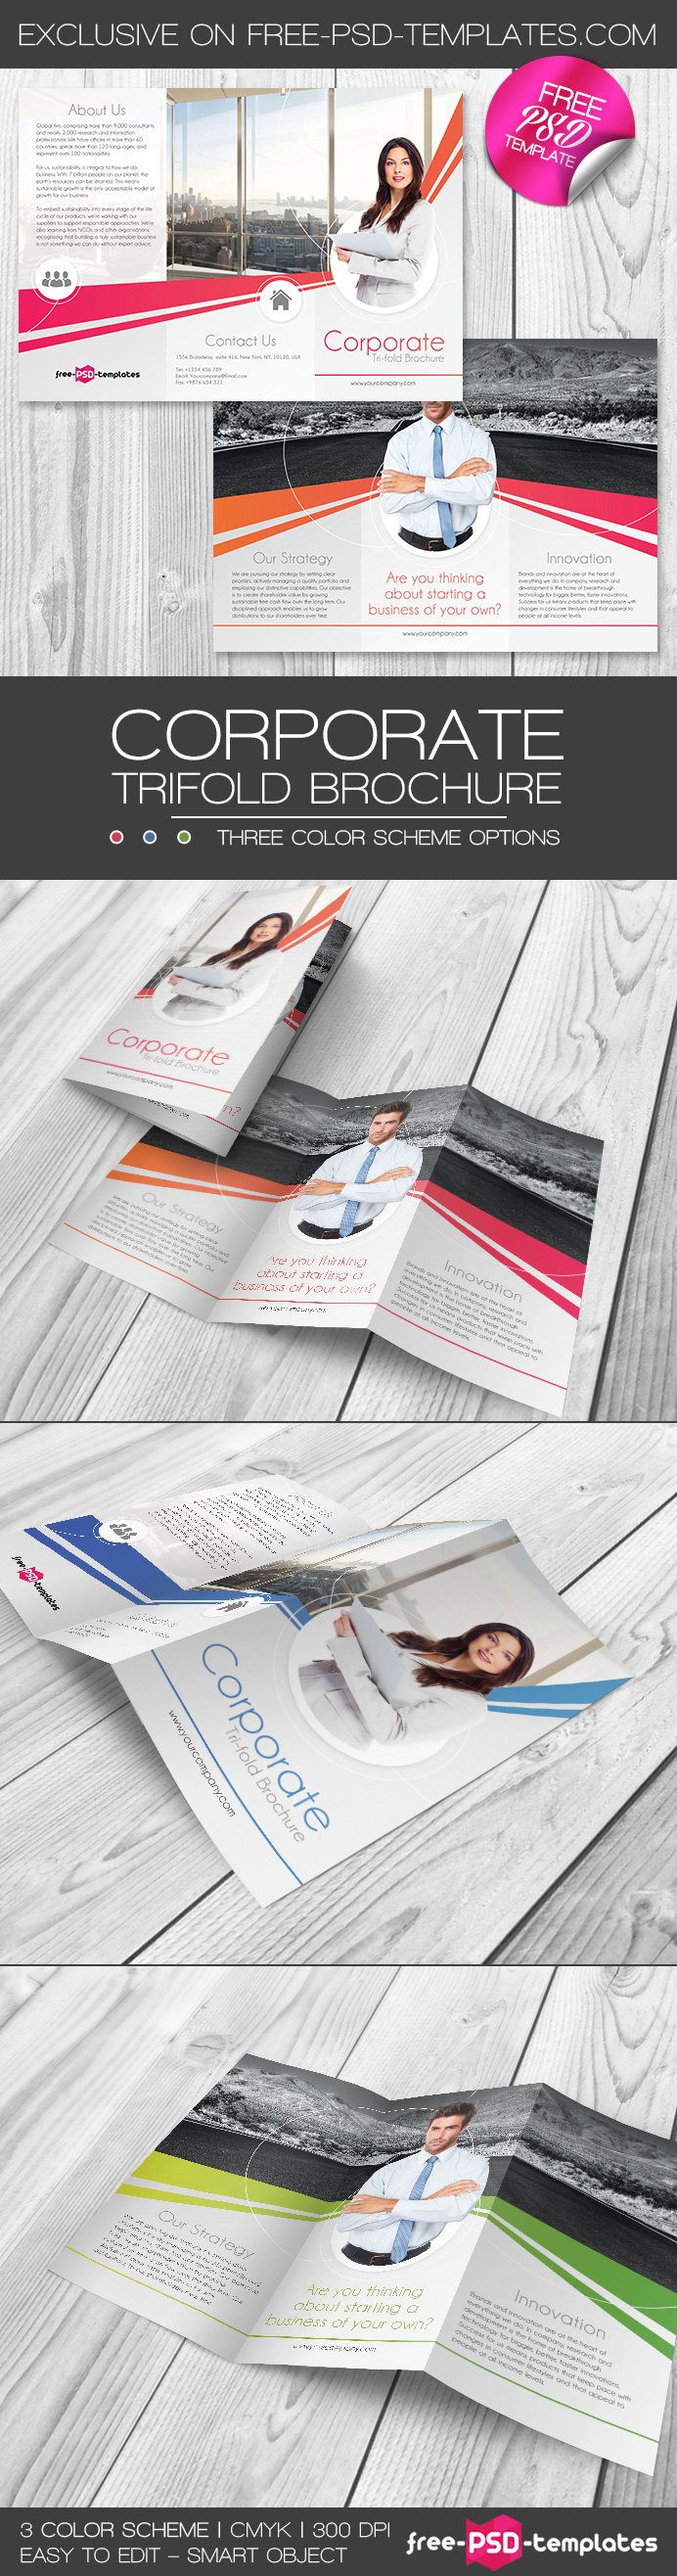 Bigpreview_corporate-free-psd-trifold-brochure-template